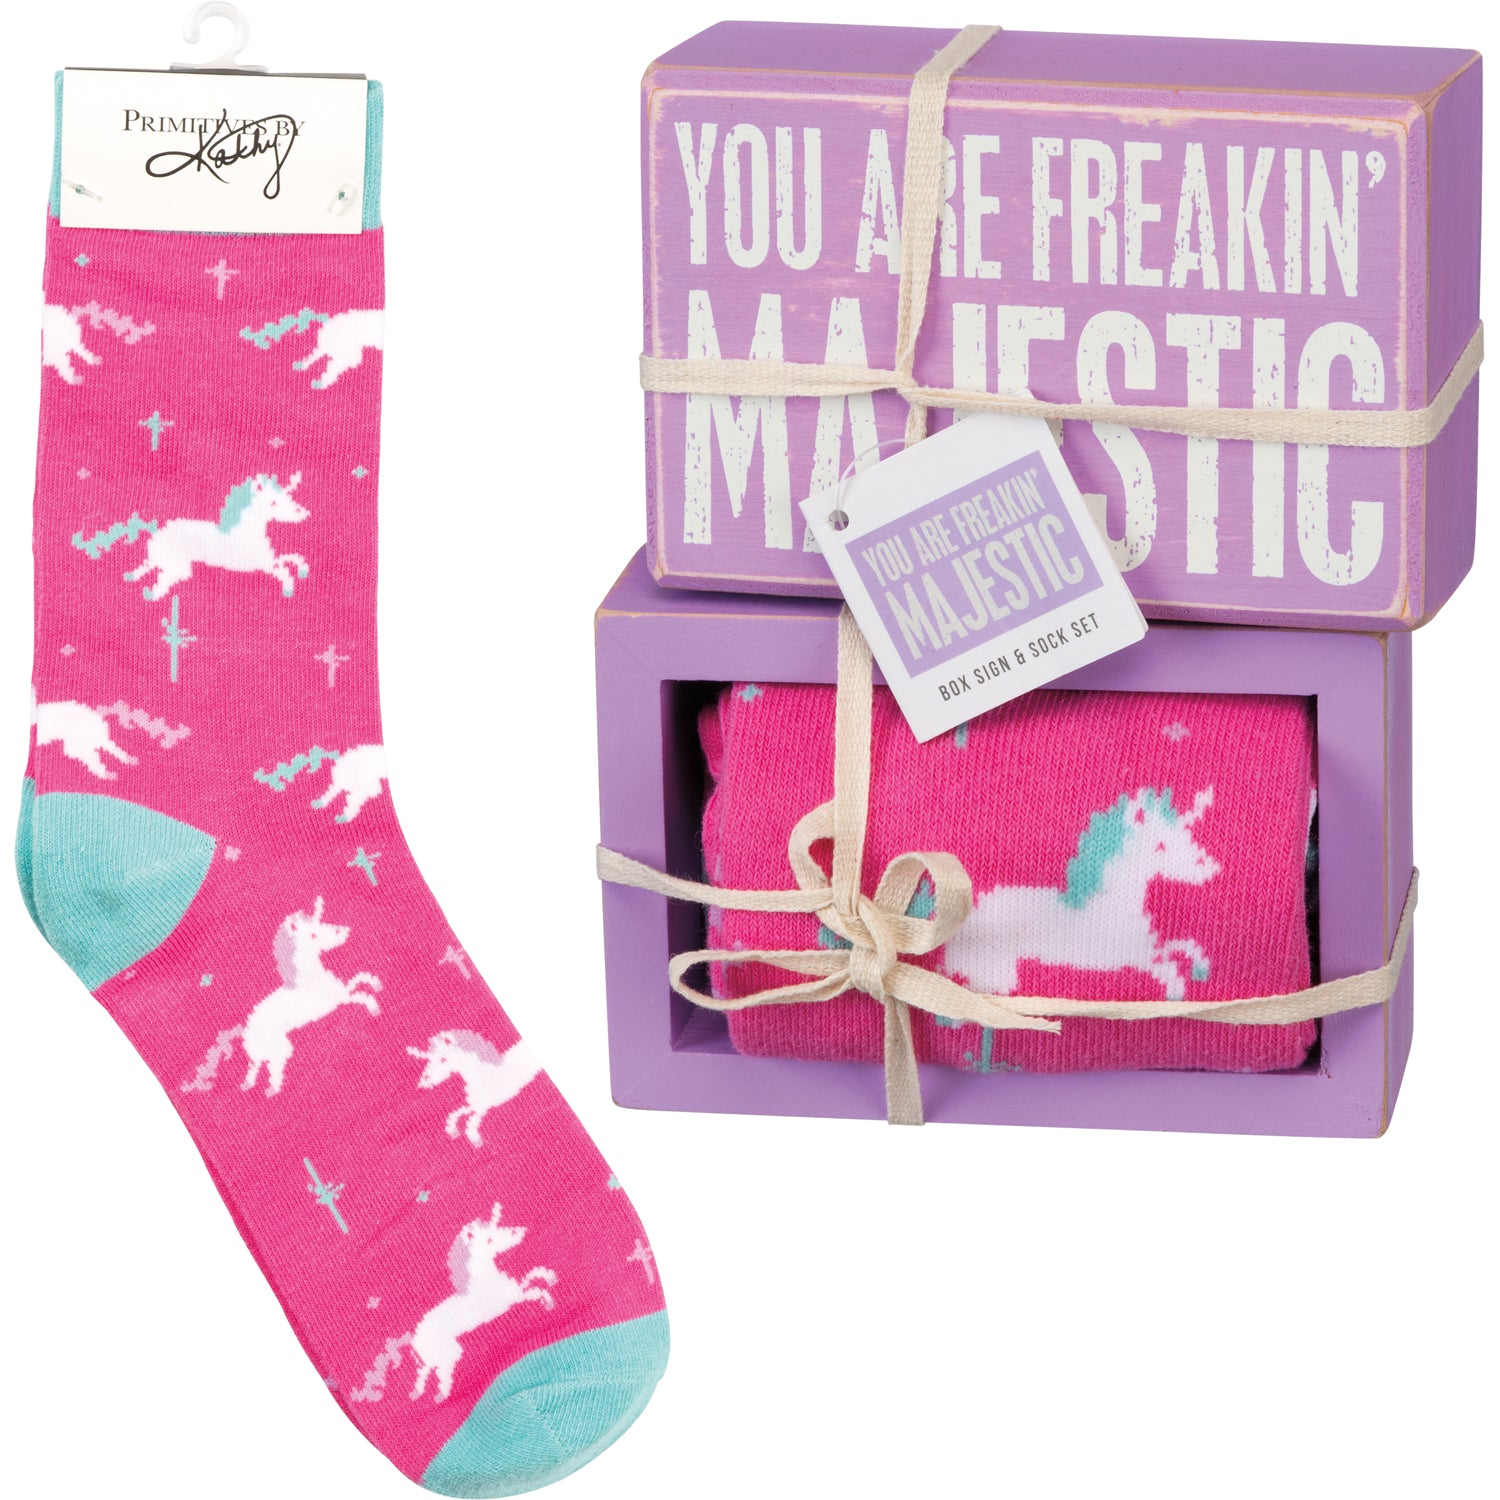 Box Sign & Sock Set - You Are Freakin' Majestic